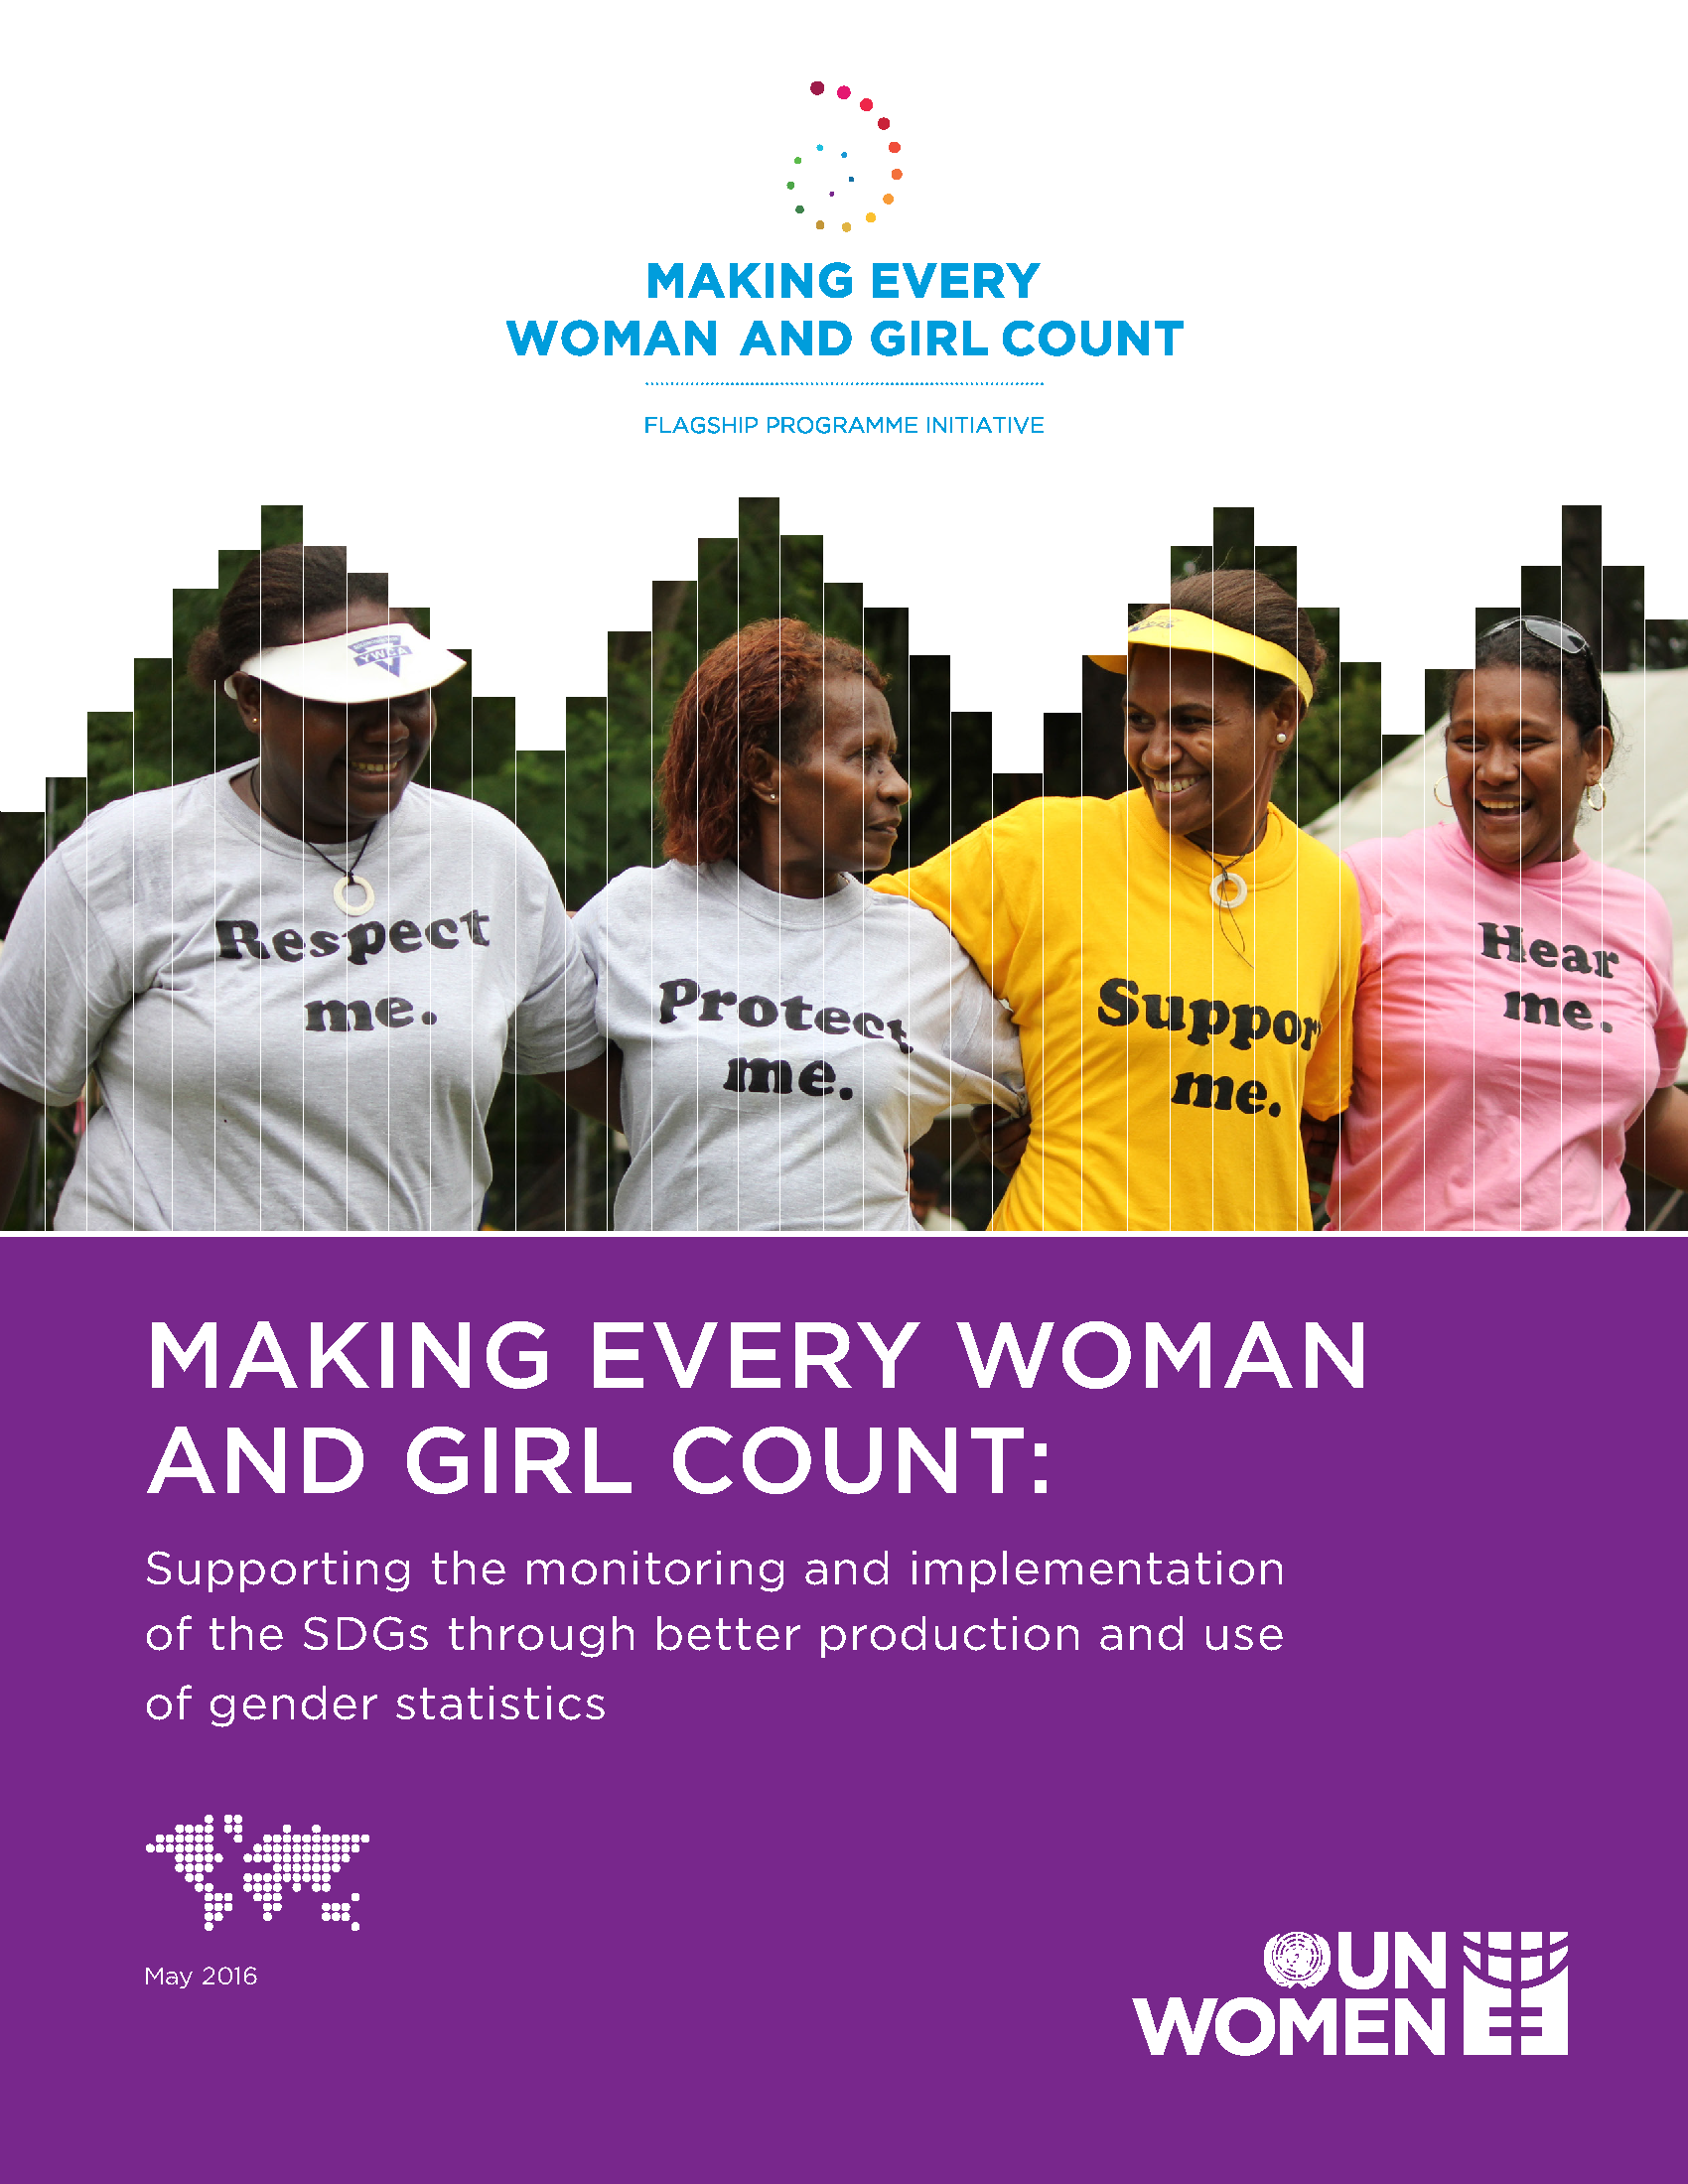 Making Every Woman and Girl Count